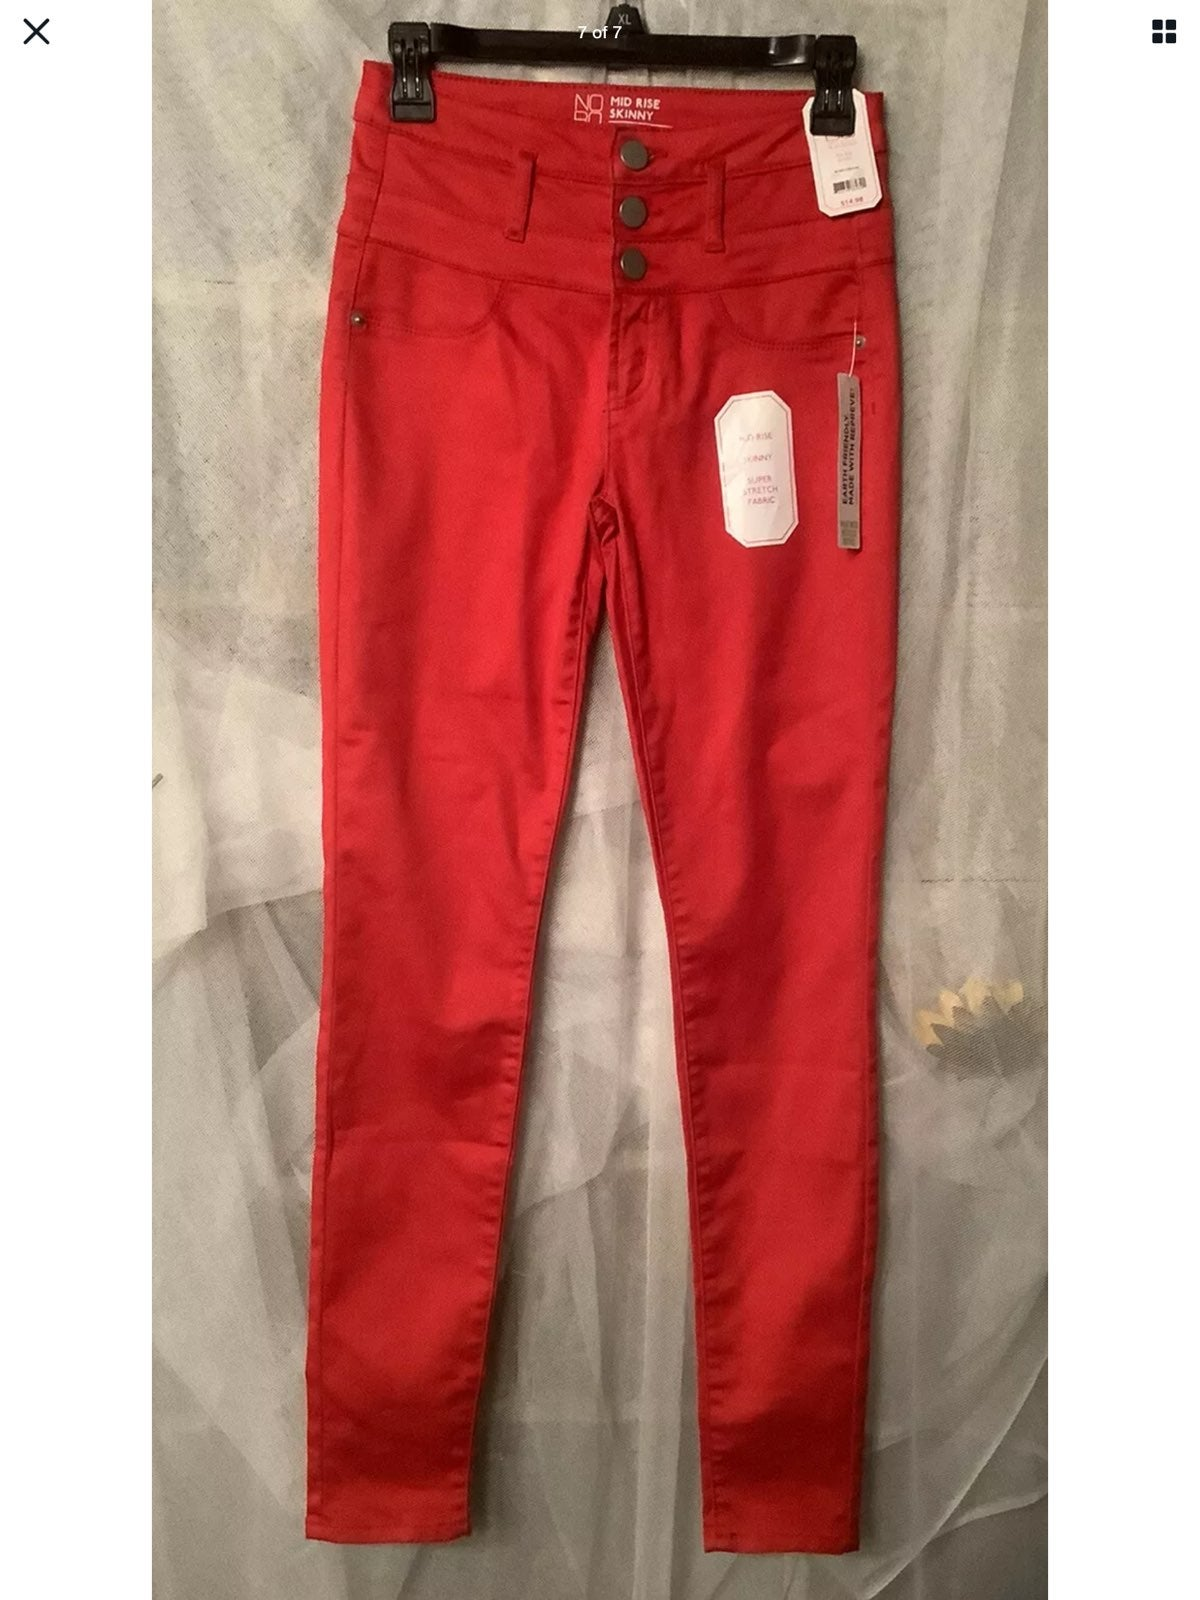 Women's Sz. 5 mid rise Skinny Red